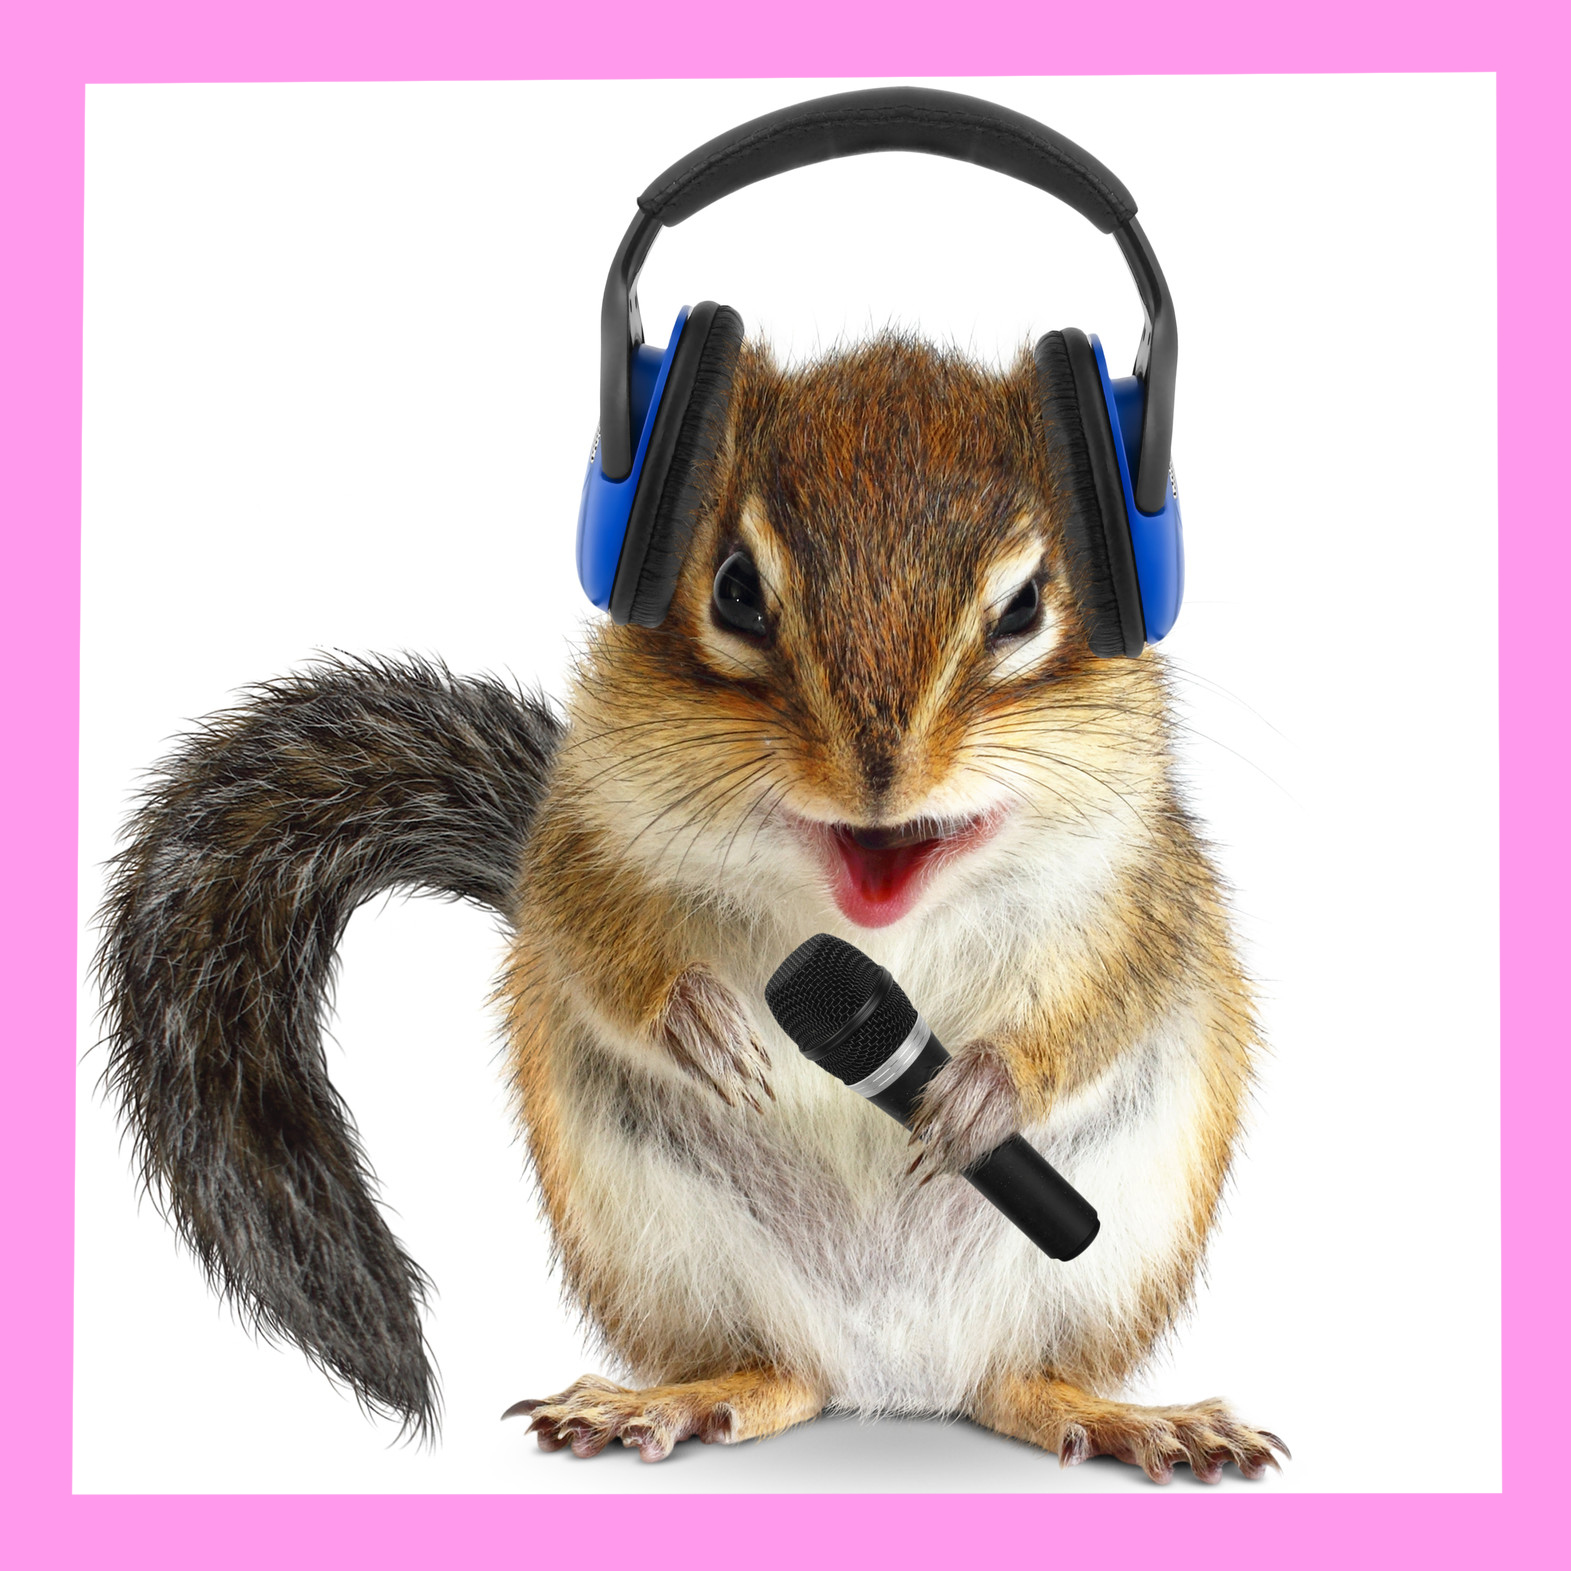 lenore-koppelman-the-cheeky-chipmunk-podcast-microphone-headphones-astoria-nyc-2.jpg